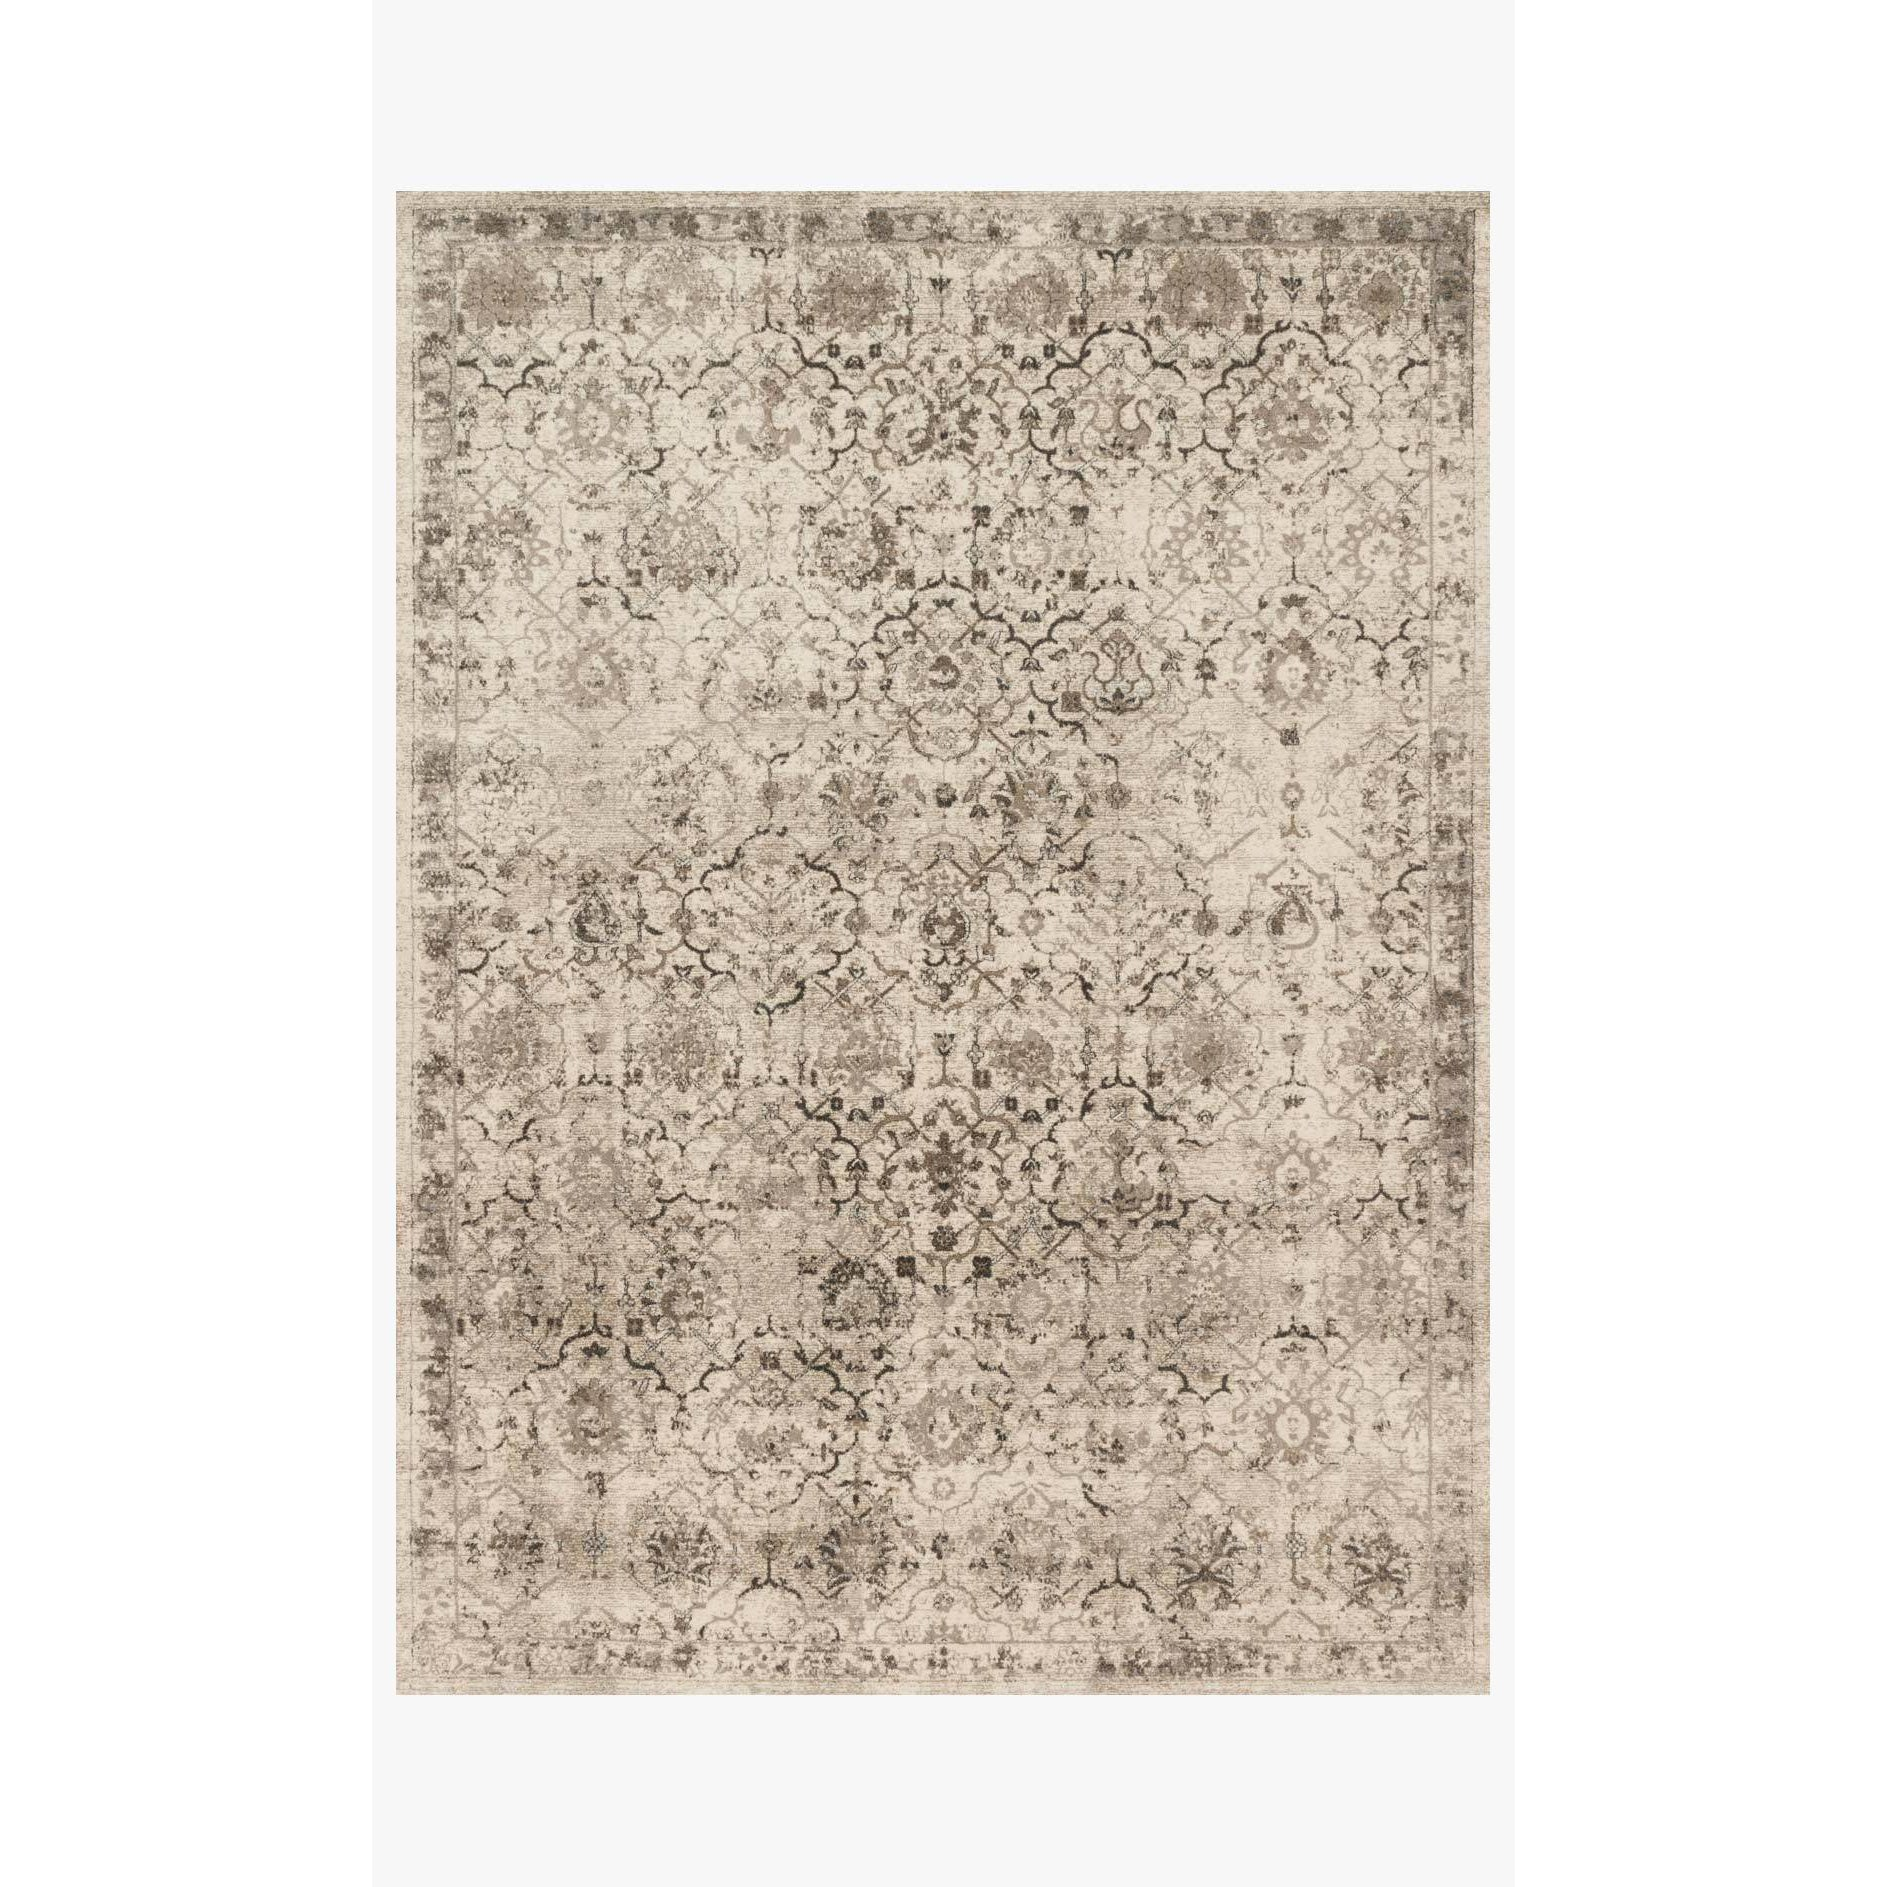 Century Rug by Loloi Rugs - CQ-03 - Sand